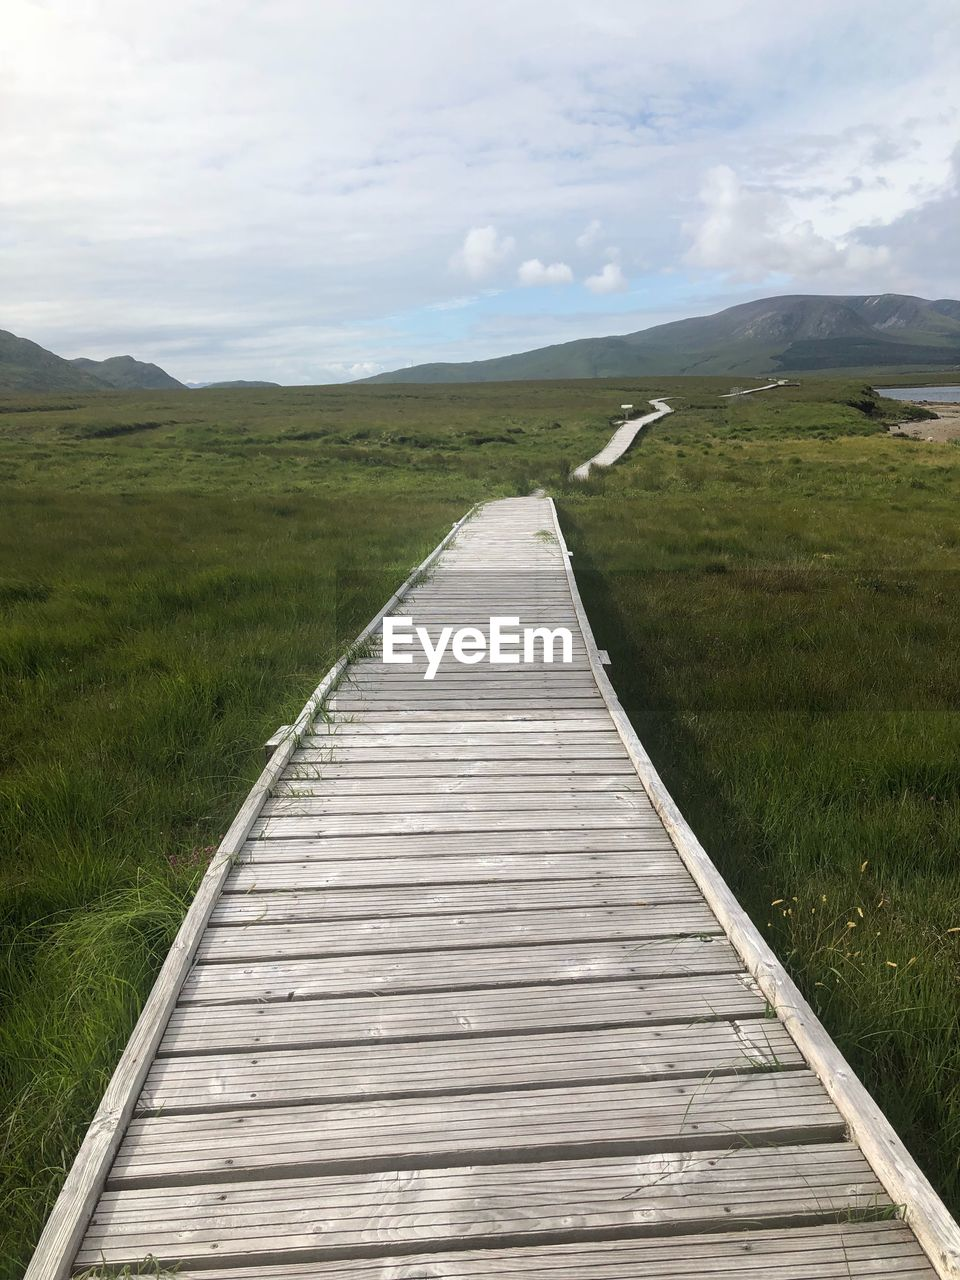 tranquil scene, scenics - nature, tranquility, grass, the way forward, sky, direction, beauty in nature, landscape, non-urban scene, cloud - sky, nature, plant, environment, wood - material, no people, land, day, mountain, field, diminishing perspective, outdoors, long